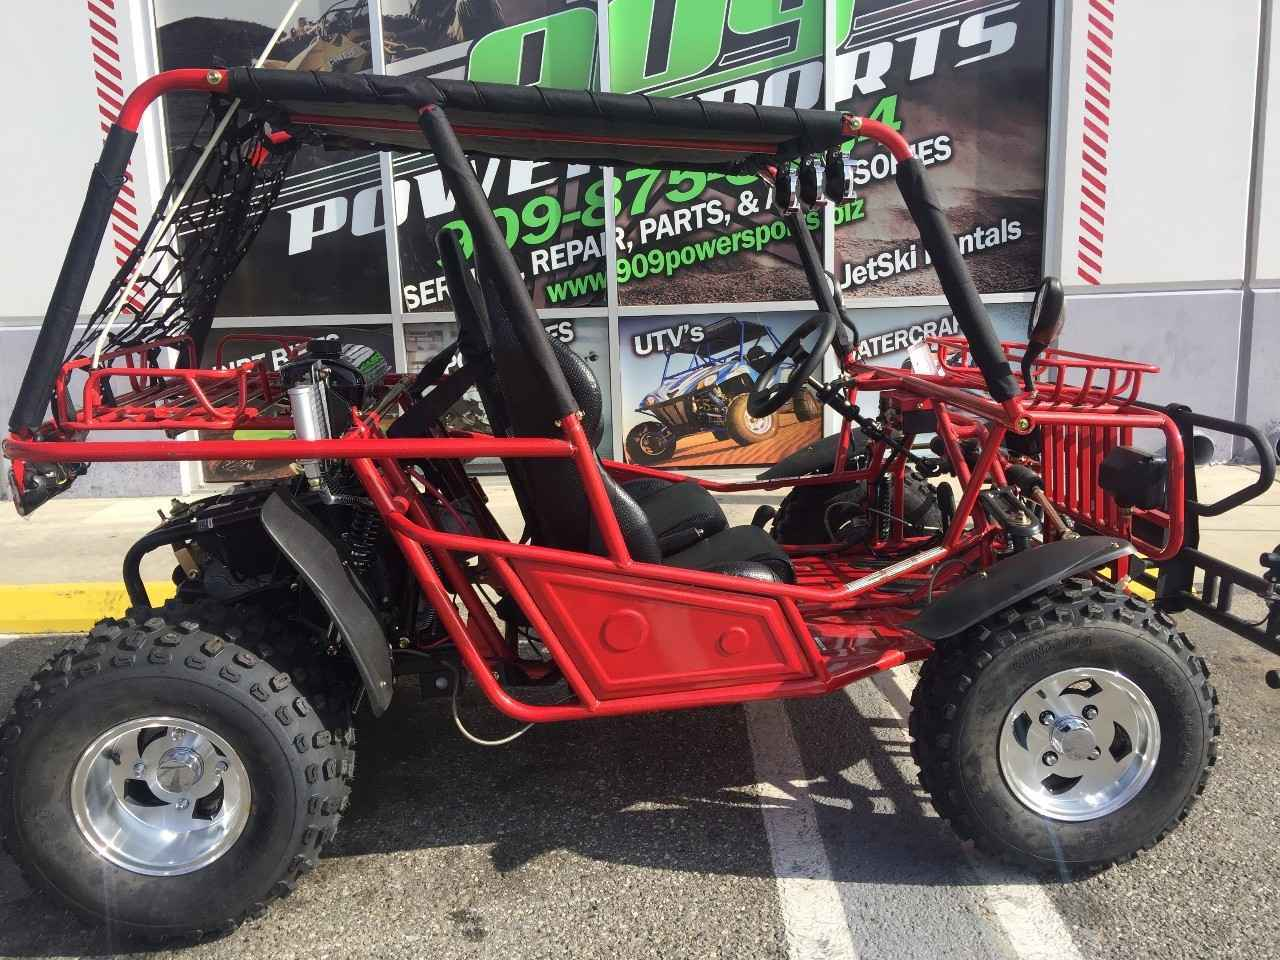 new 2016 kandi 200cc jeep go kart atvs for sale in california on atv trades. Black Bedroom Furniture Sets. Home Design Ideas